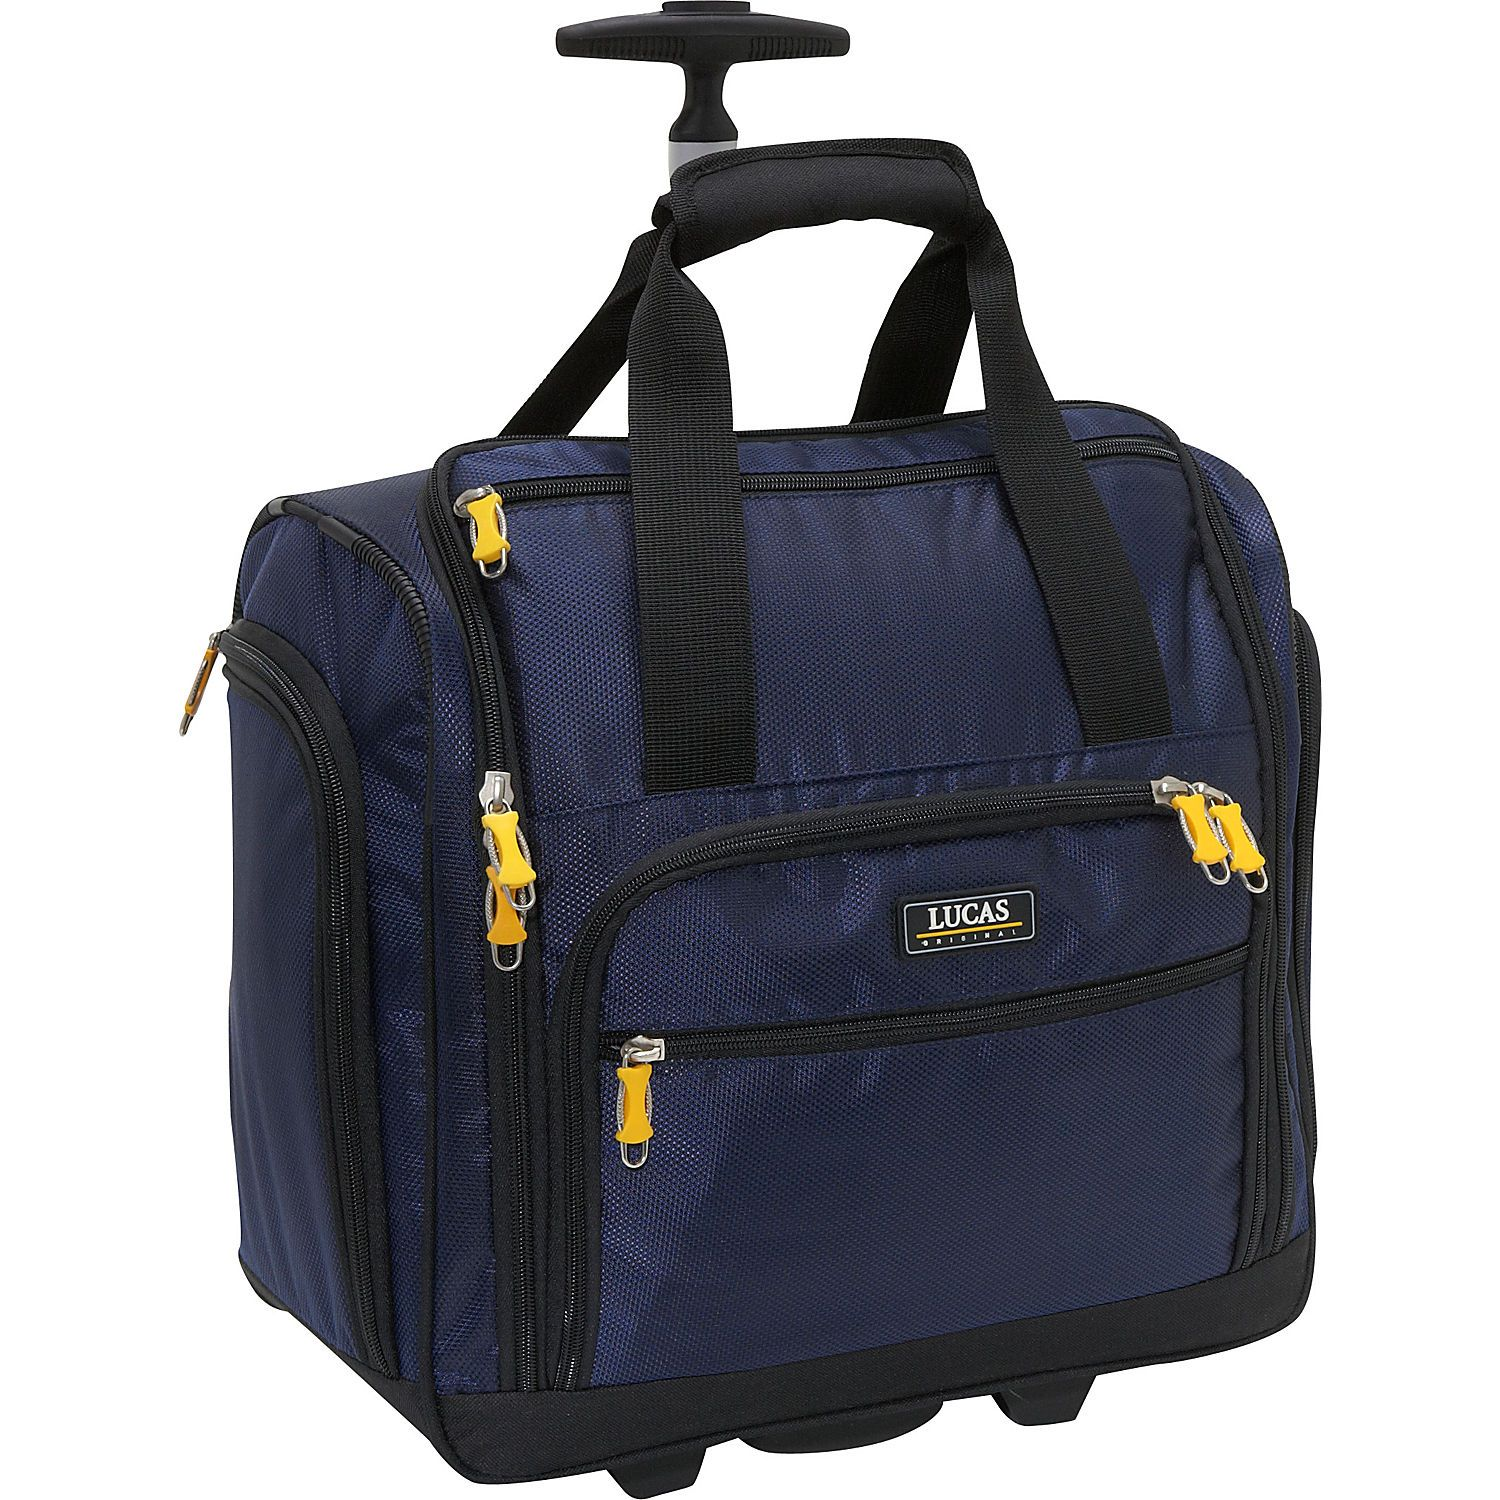 Lucas Wheeled Under The Seat Cabin Bag Ebags Comes With Several Small Organizers 47 49 4 1 2 Stars